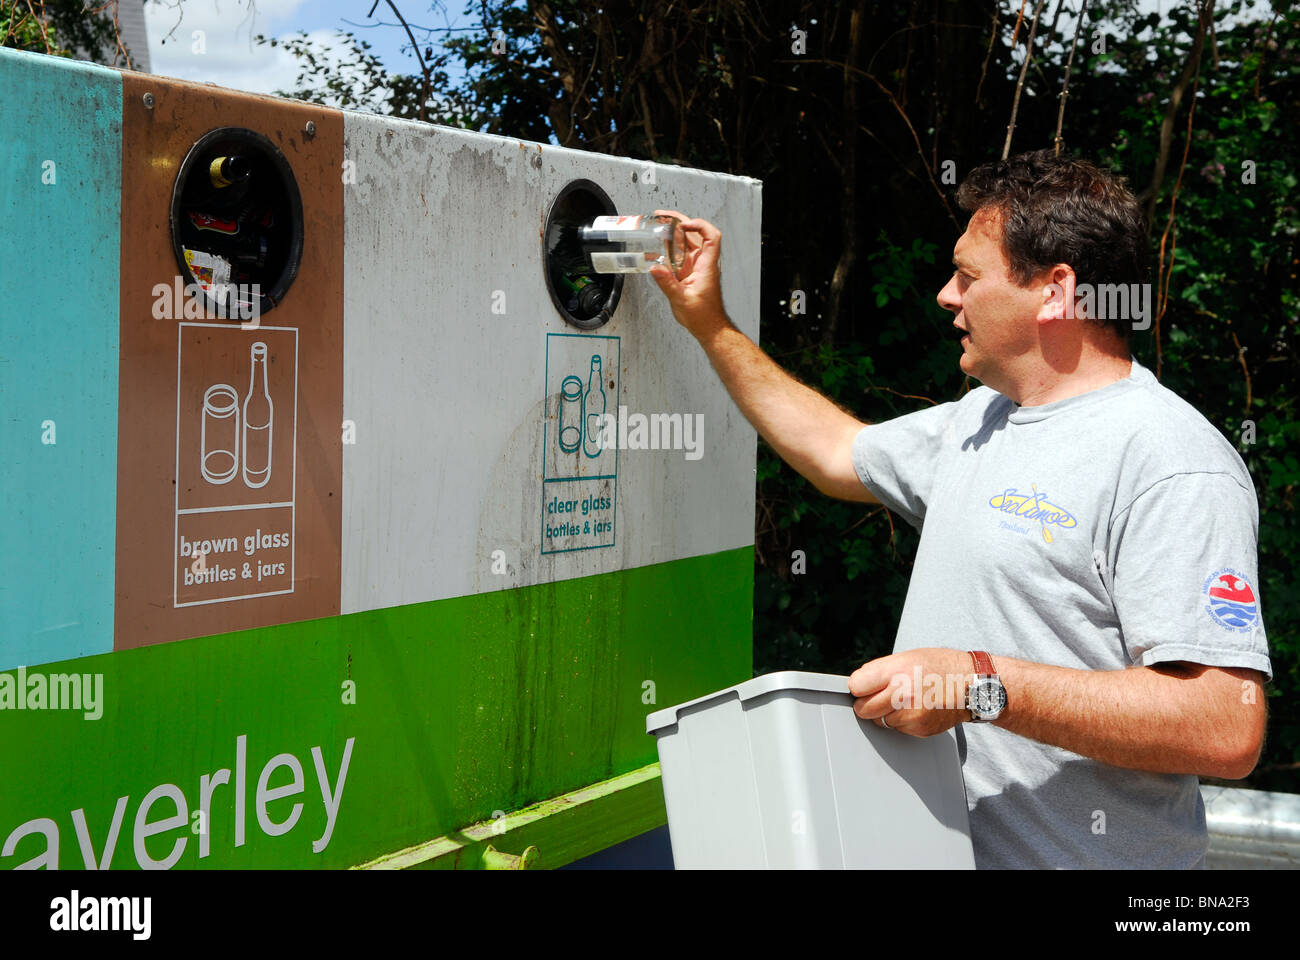 Man placing bottle in bottle bank for recycling, Wey Hill, Haslemere, Surrey, UK. - Stock Image